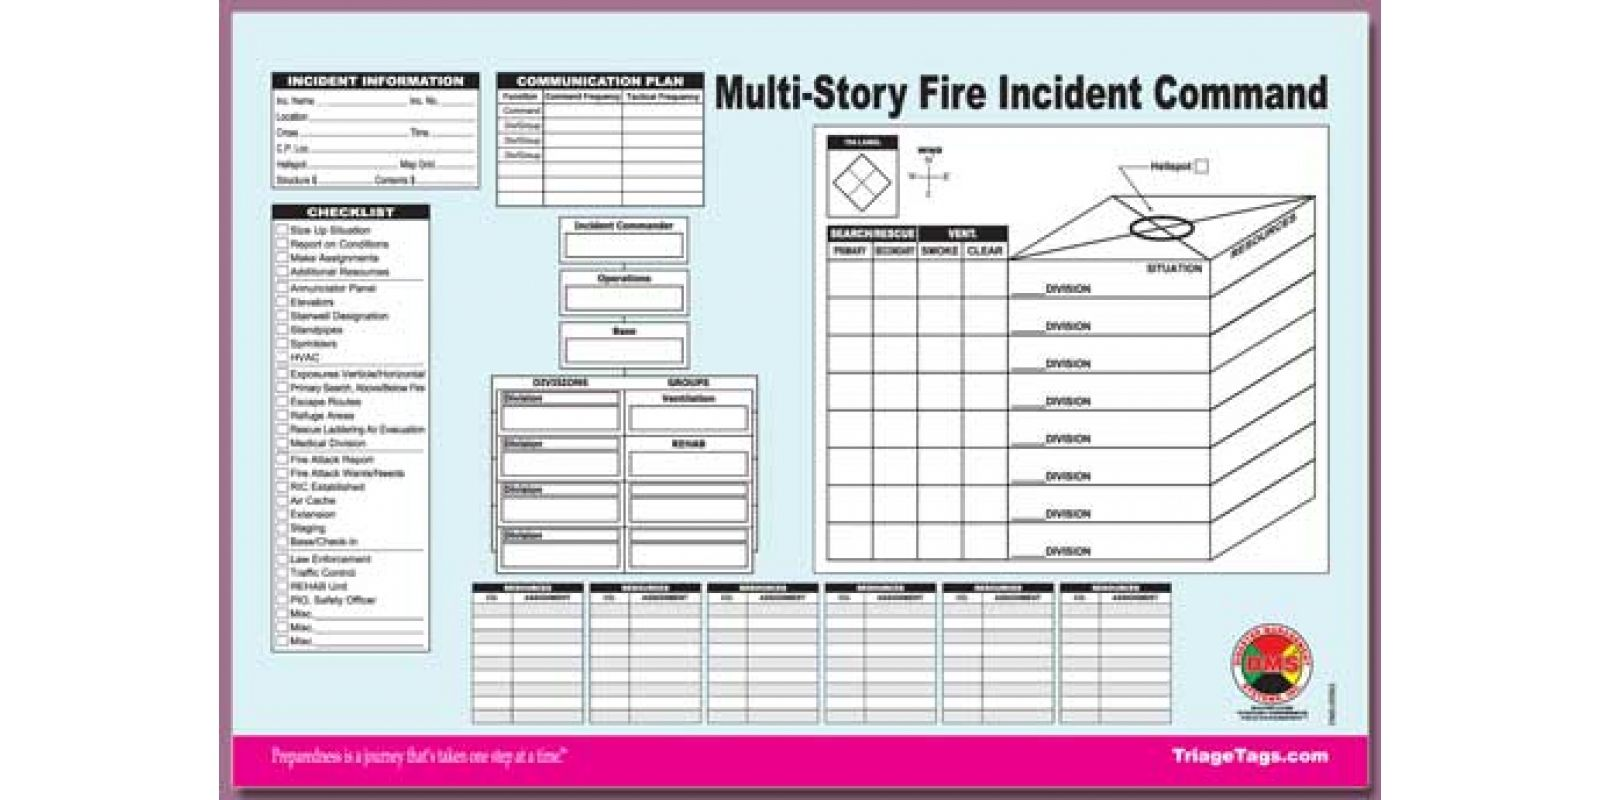 Incident command worksheet pad firefighter training triagetags incident command worksheet pad fandeluxe Images